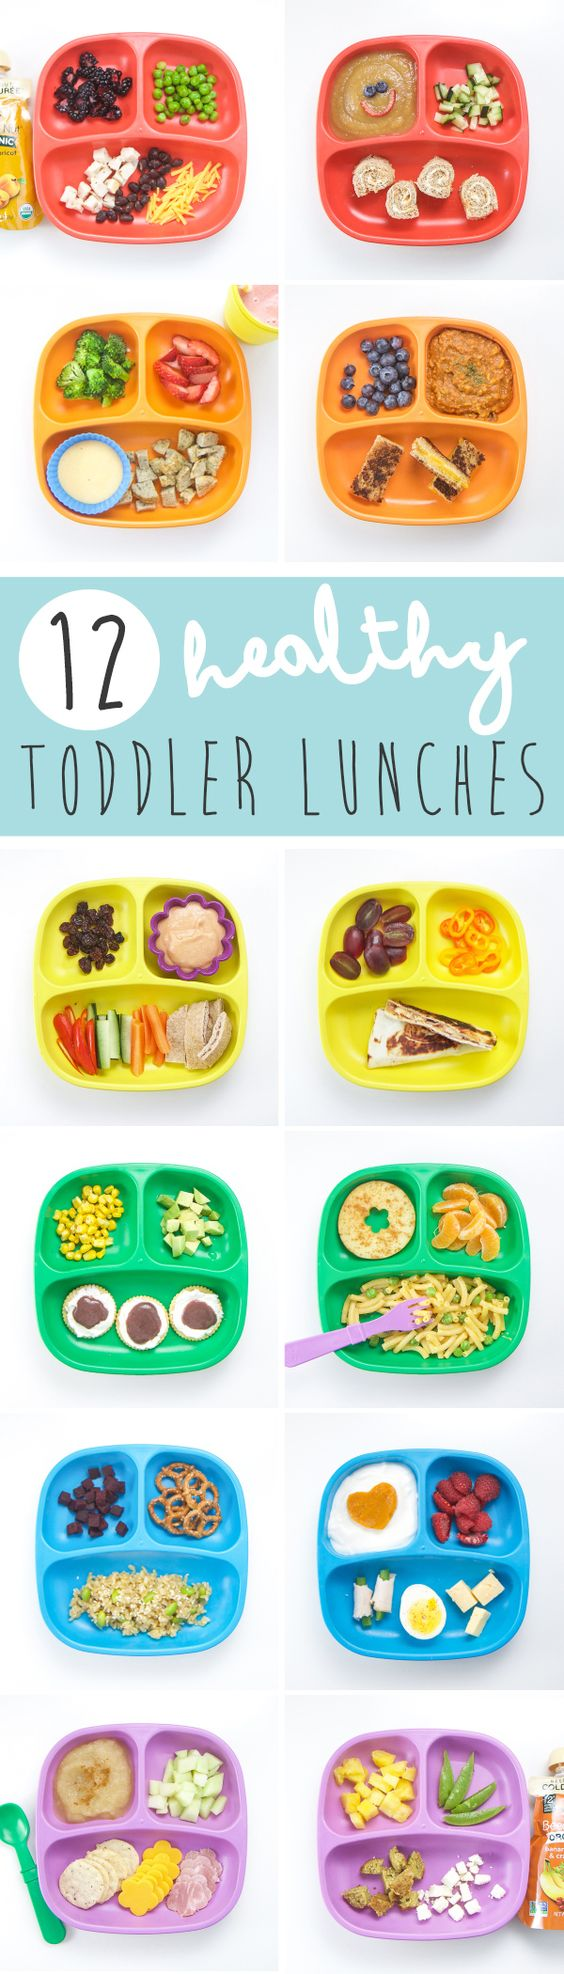 These 12 Healthy Toddler Lunches are nutrient packed (we are even going to hide some extra veggies in them) and balanced meals that will be devoured by your toddler in no time at all!: